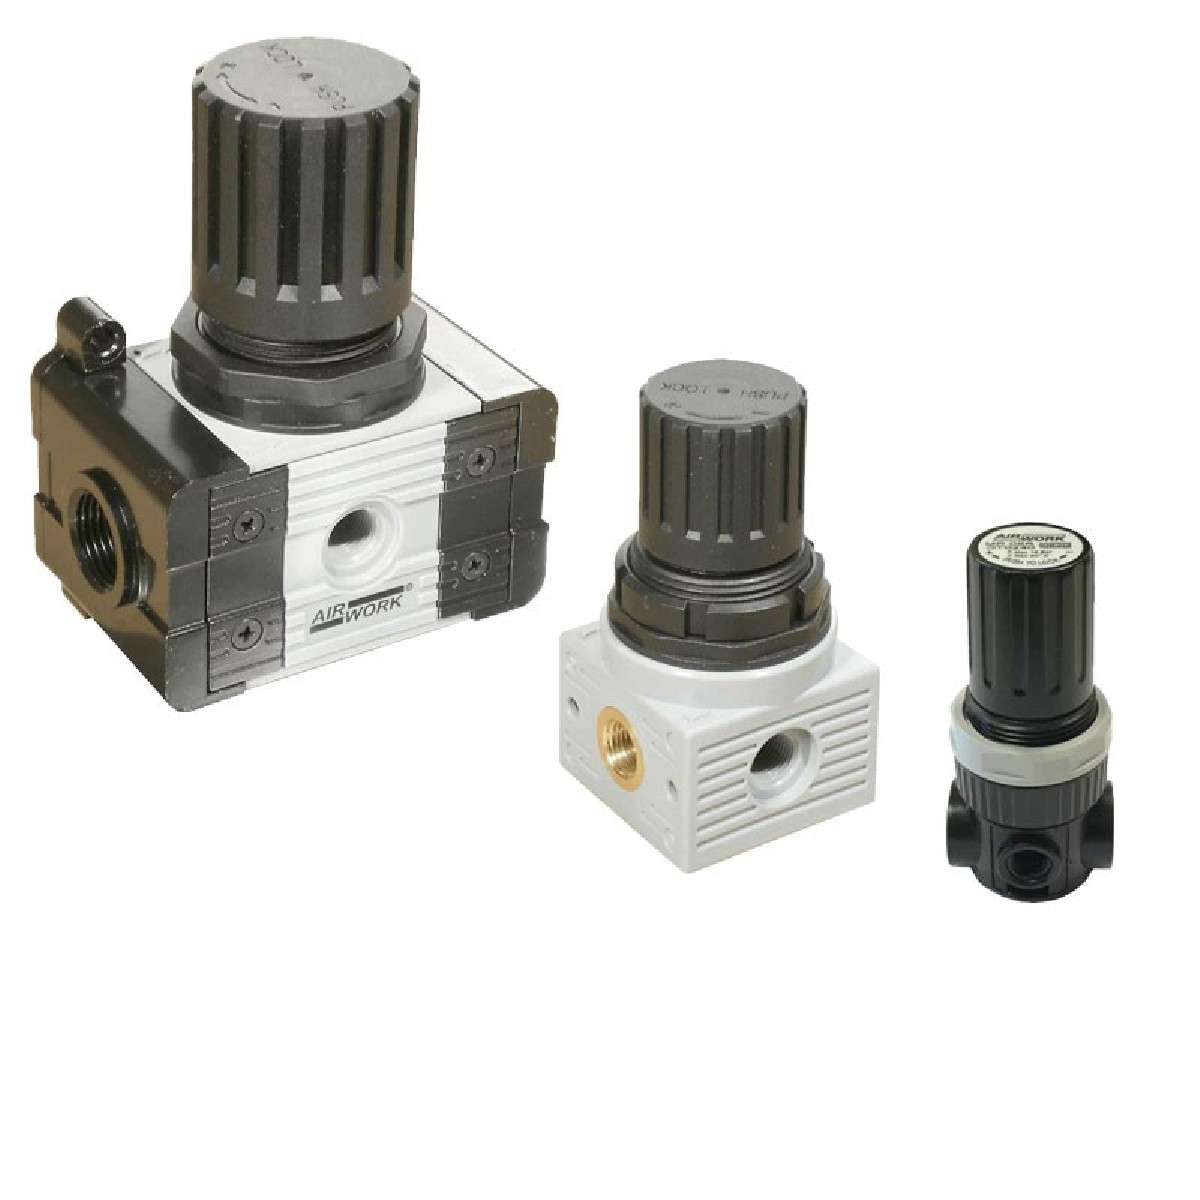 Davair Air treatment - pneumatic regulators